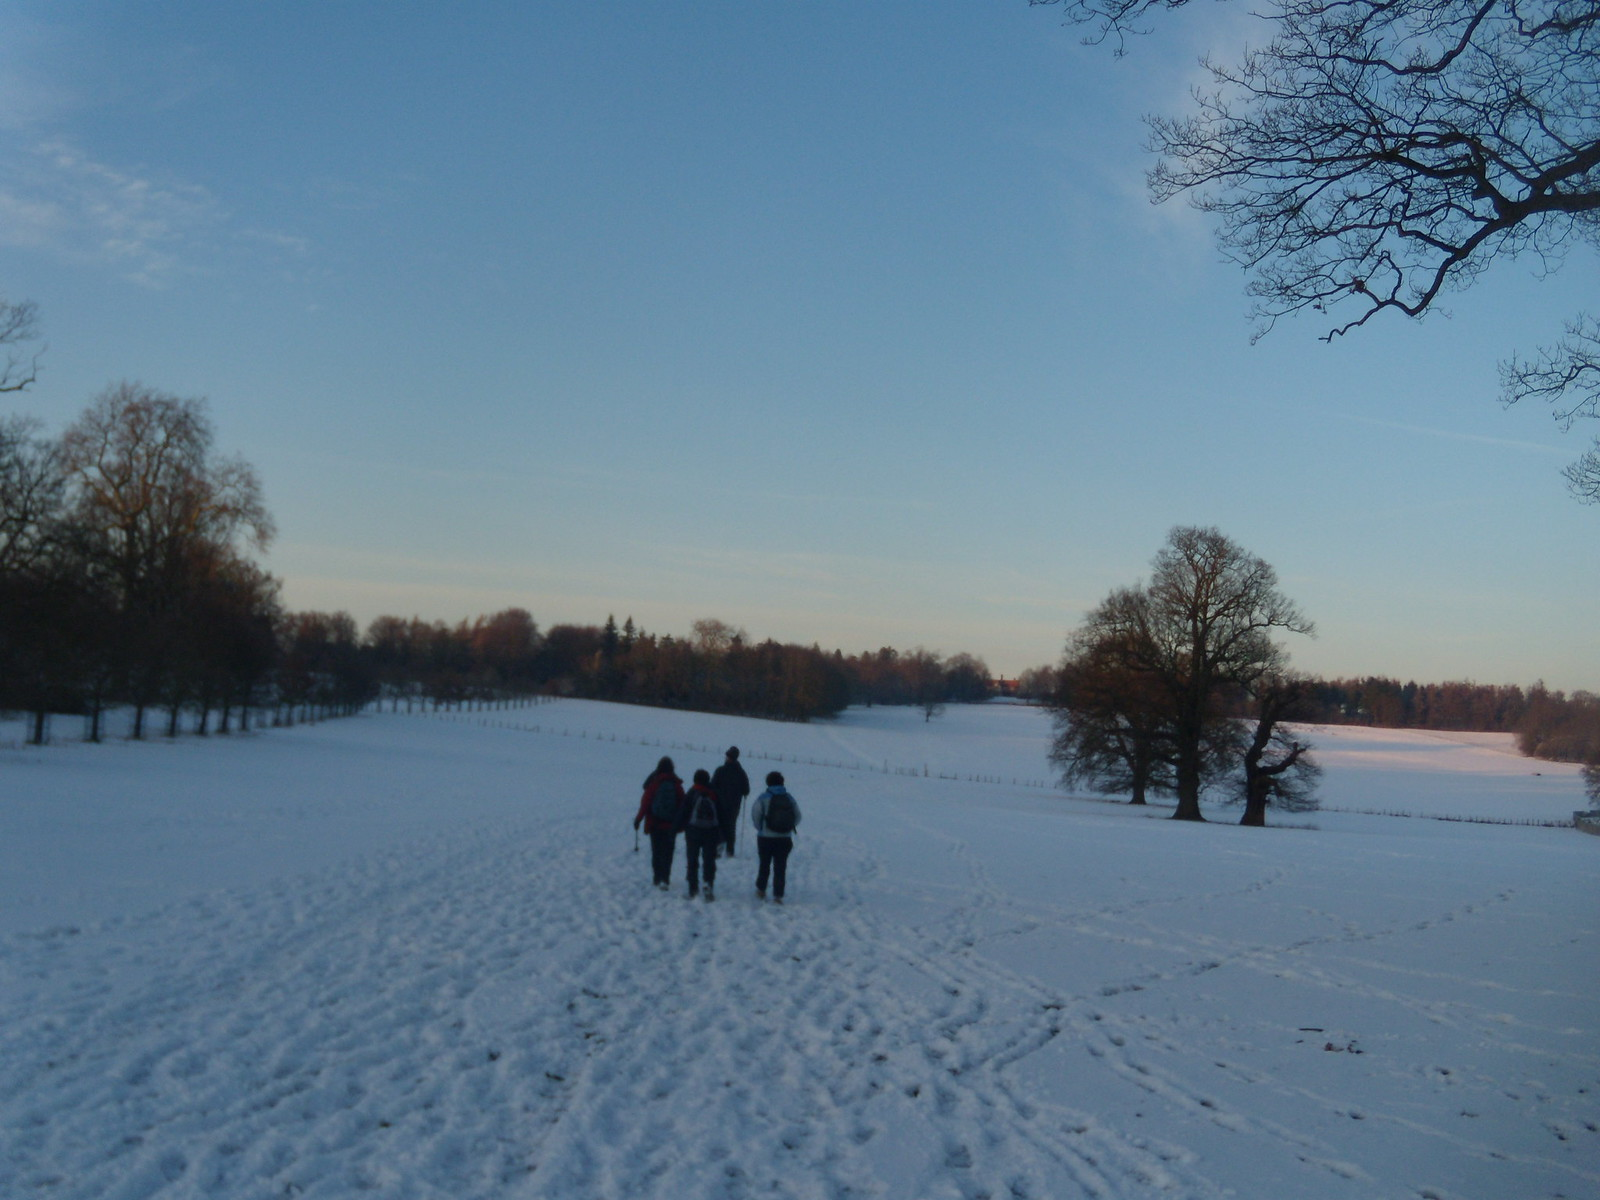 On through the snow Hever to Leigh